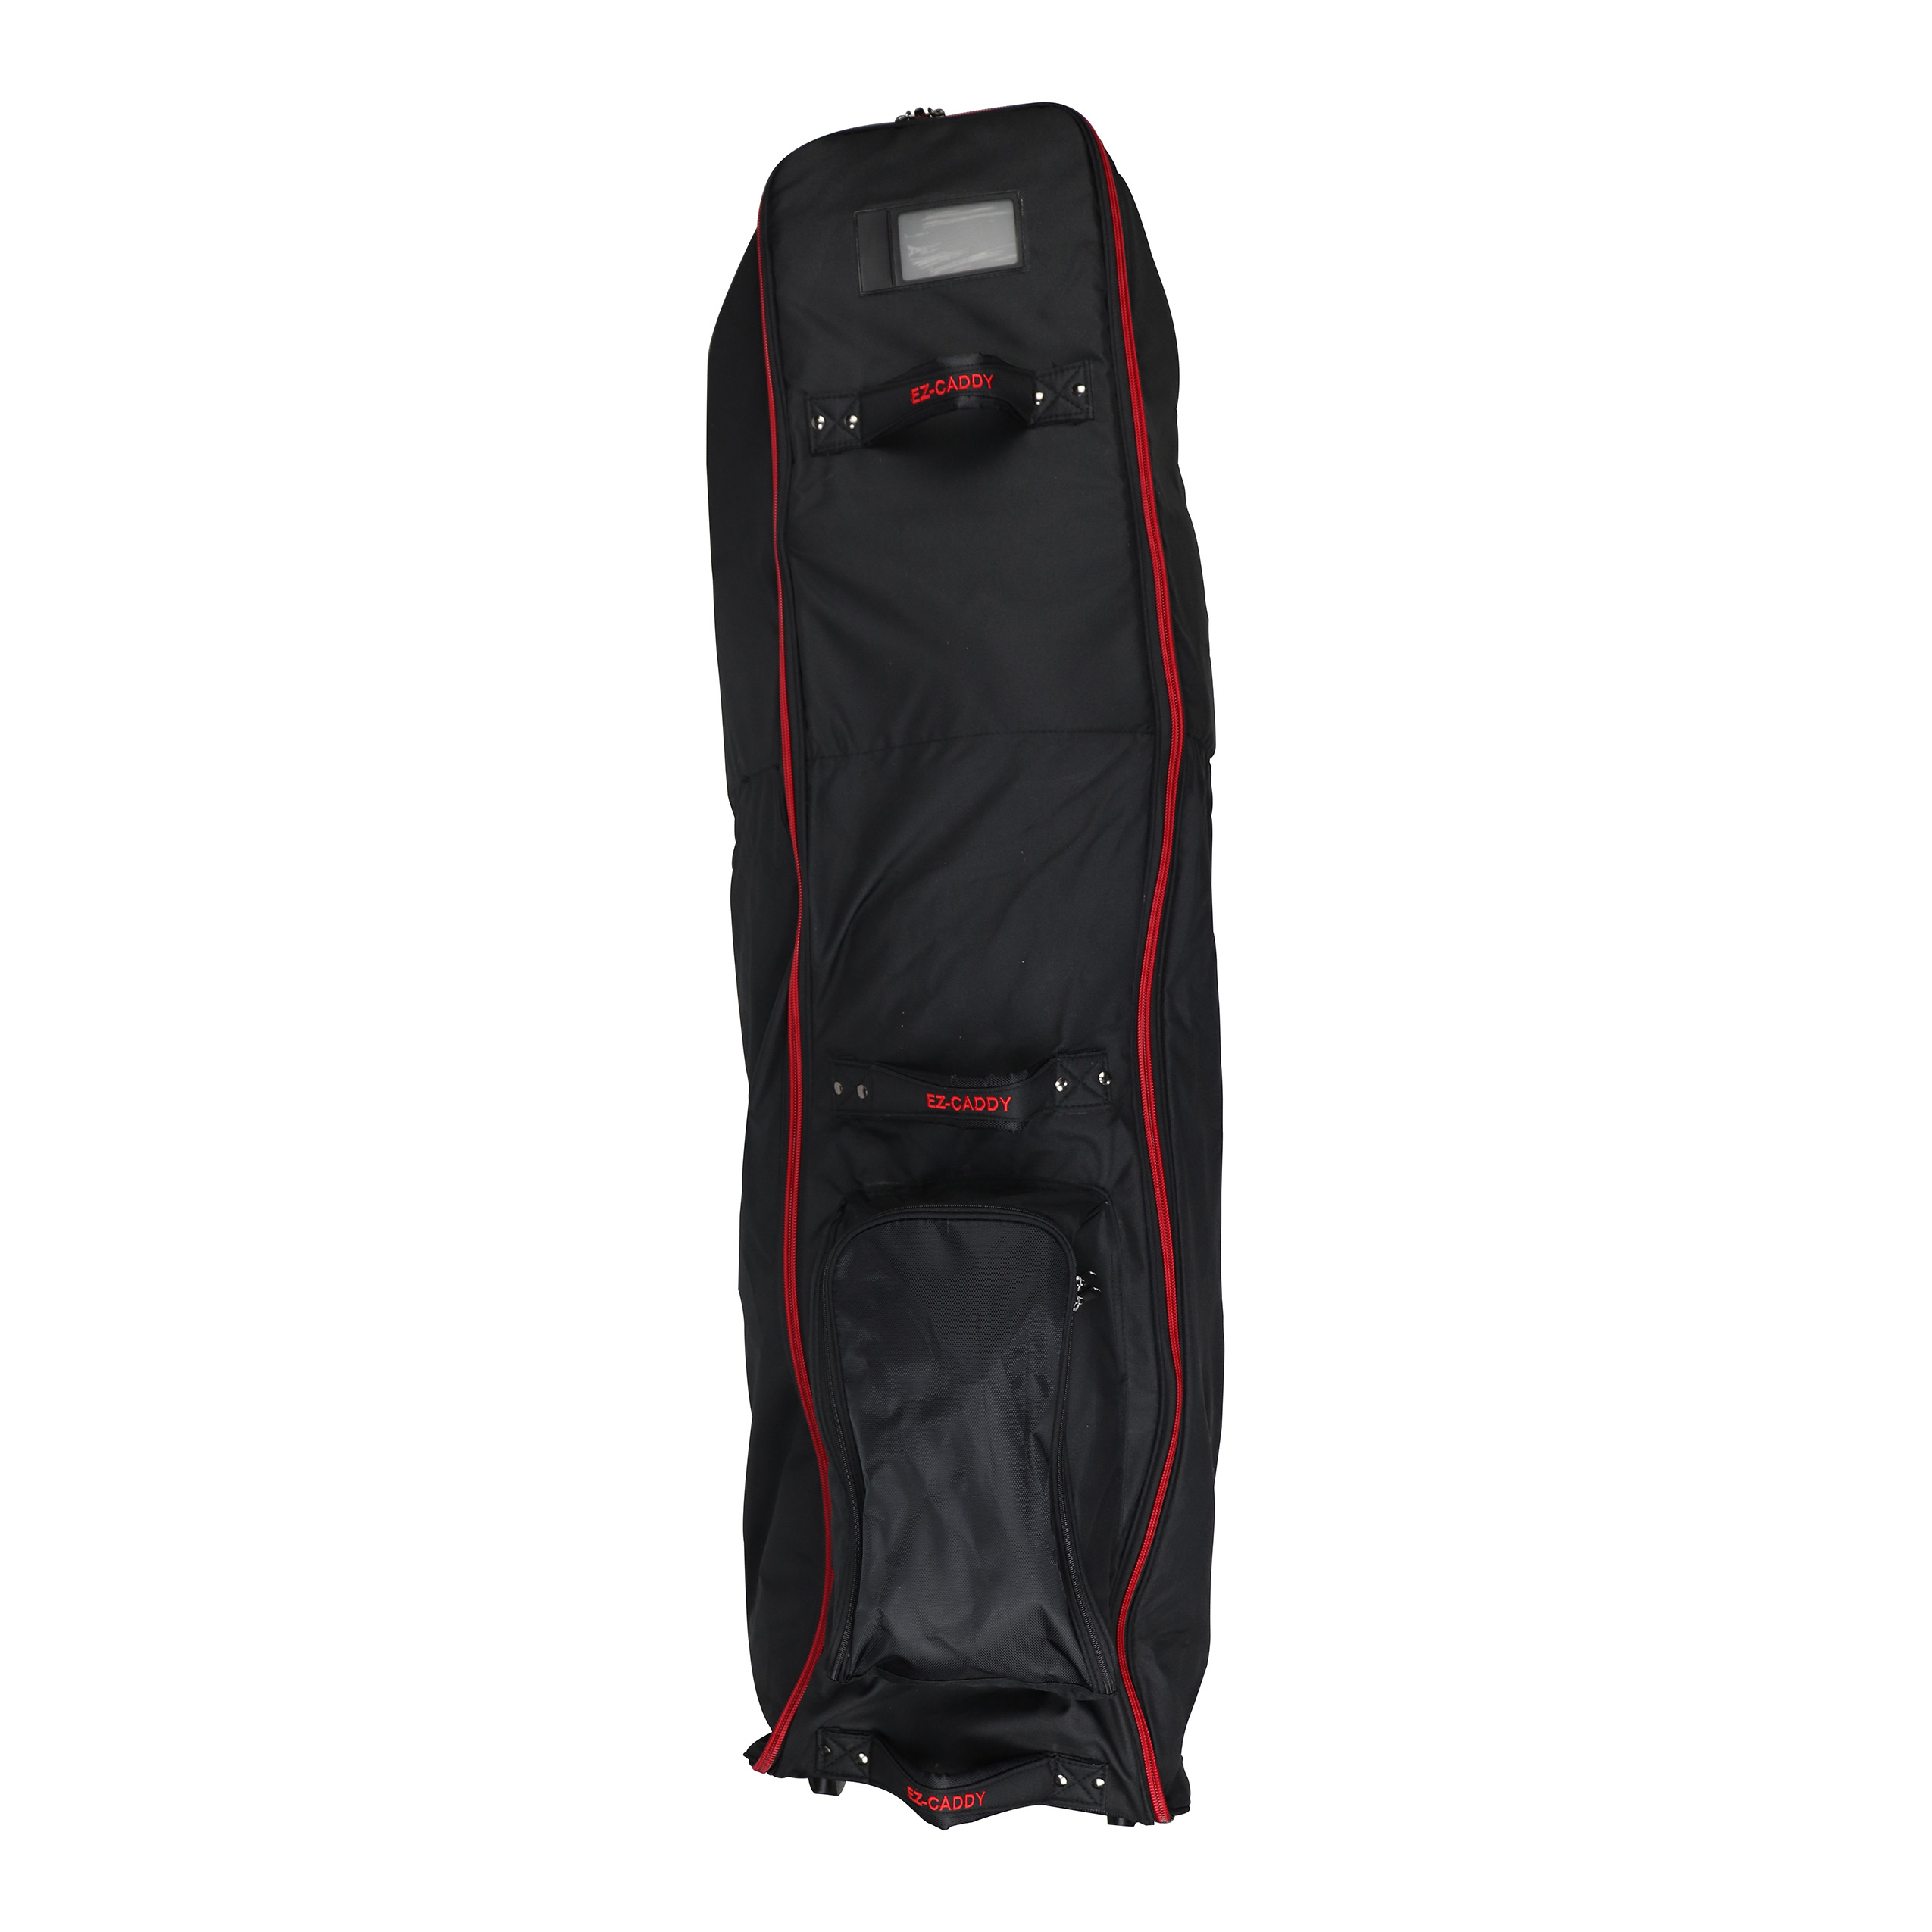 EZ-CADDY TRAVEL COVER 7024